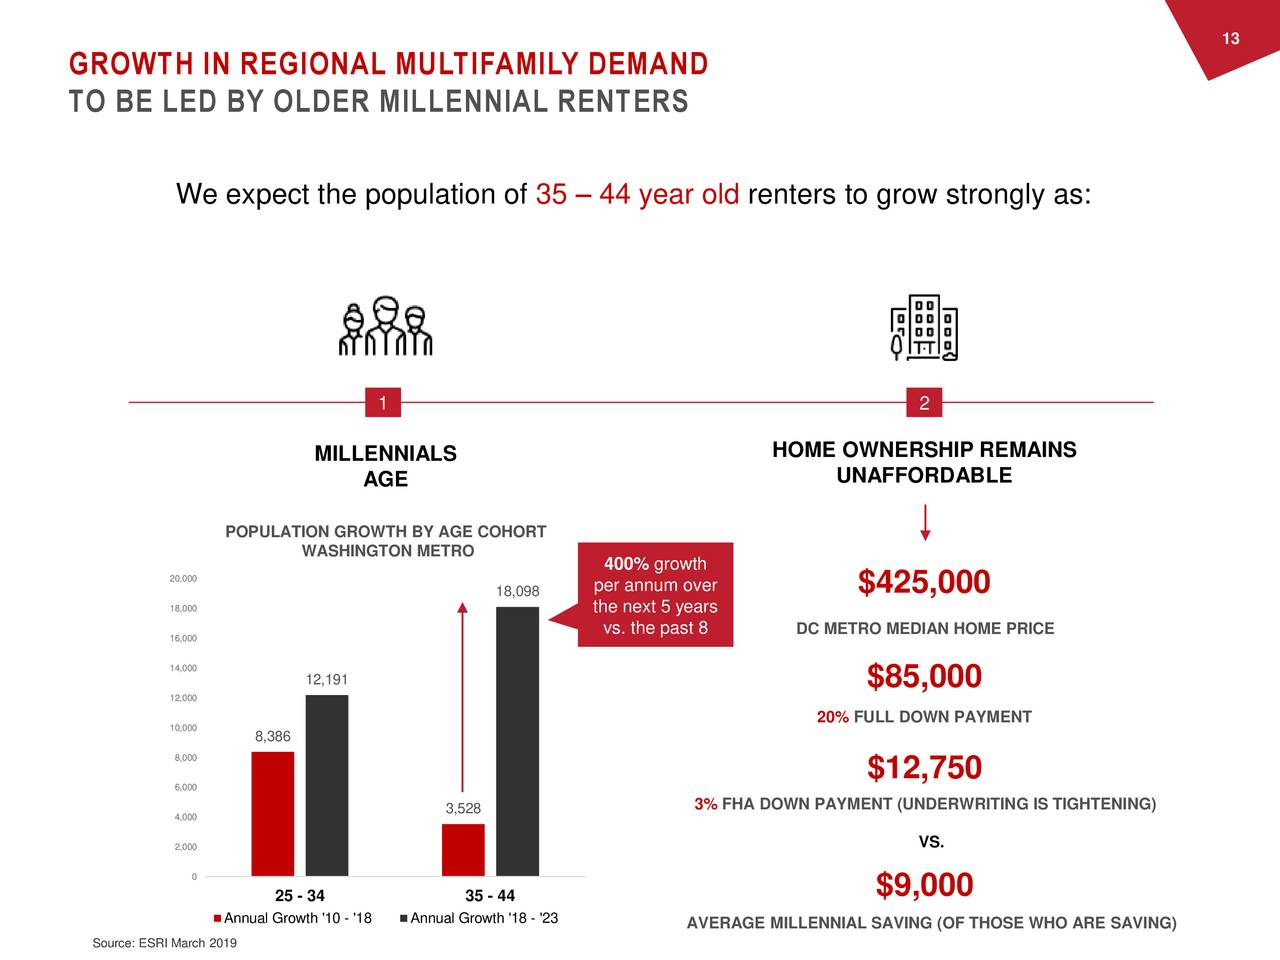 GROWTH IN REGIONAL MULTIFAMILY DEMAND TO BE LED BY OLDER MILLENNIAL RENTERS We expect the population of 35 – 44 year old renters to grow strongly as: 1 2 MILLENNIALS HOME OWNERSHIP REMAINS AGE UNAFFORDABLE POPULATION GROWTH BY AGE COHORT WASHINGTON METRO 400% growth 20,000 18,098 per annum over $425,000 18,000 the next 5 years 16,000 vs. the past 8 DC METRO MEDIAN HOME PRICE 14,000 12,191 $85,000 12,000 10,000 20% FULL DOWN PAYMENT 8,386 8,000 $12,750 6,000 3,528 3% FHA DOWN PAYMENT (UNDERWRITING IS TIGHTENING) 4,000 2,000 VS. 0 25 - 34 35 - 44 $9,000 Annual Growth '10 - 'Annual Growth '18 - '23 AVERAGE MILLENNIAL SAVING (OF THOSE WHO ARE SAVING) Source: ESRI March 2019